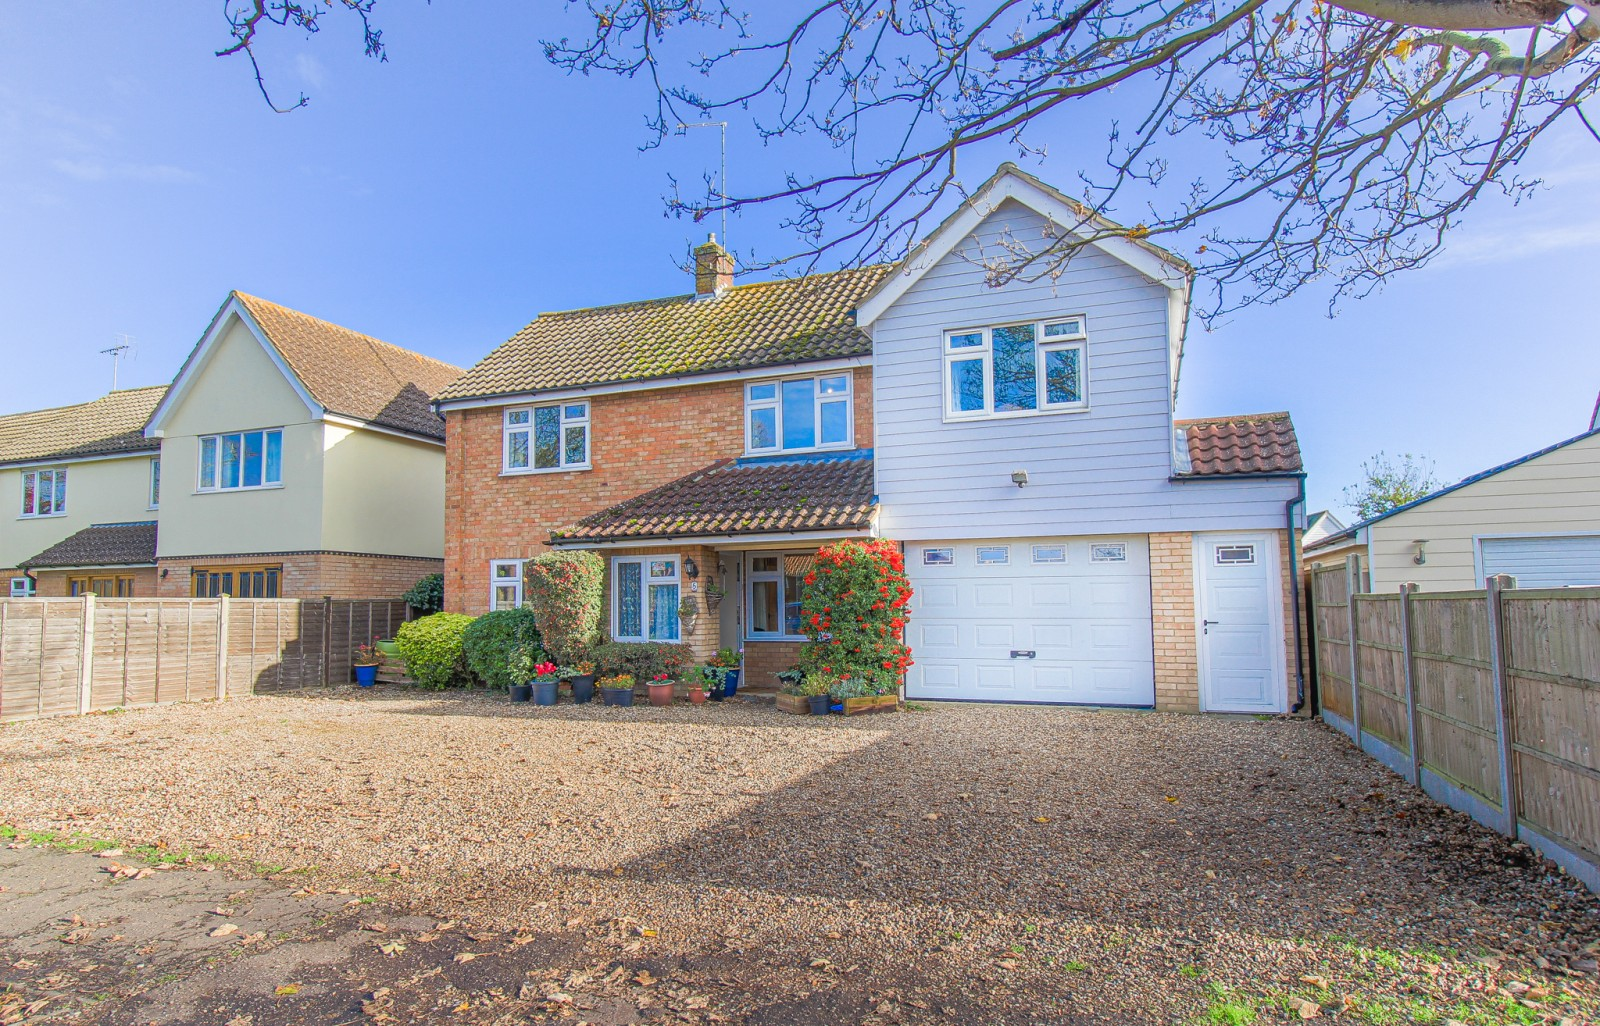 Seaview Avenue, West Mersea, Colchester, Essex, CO5